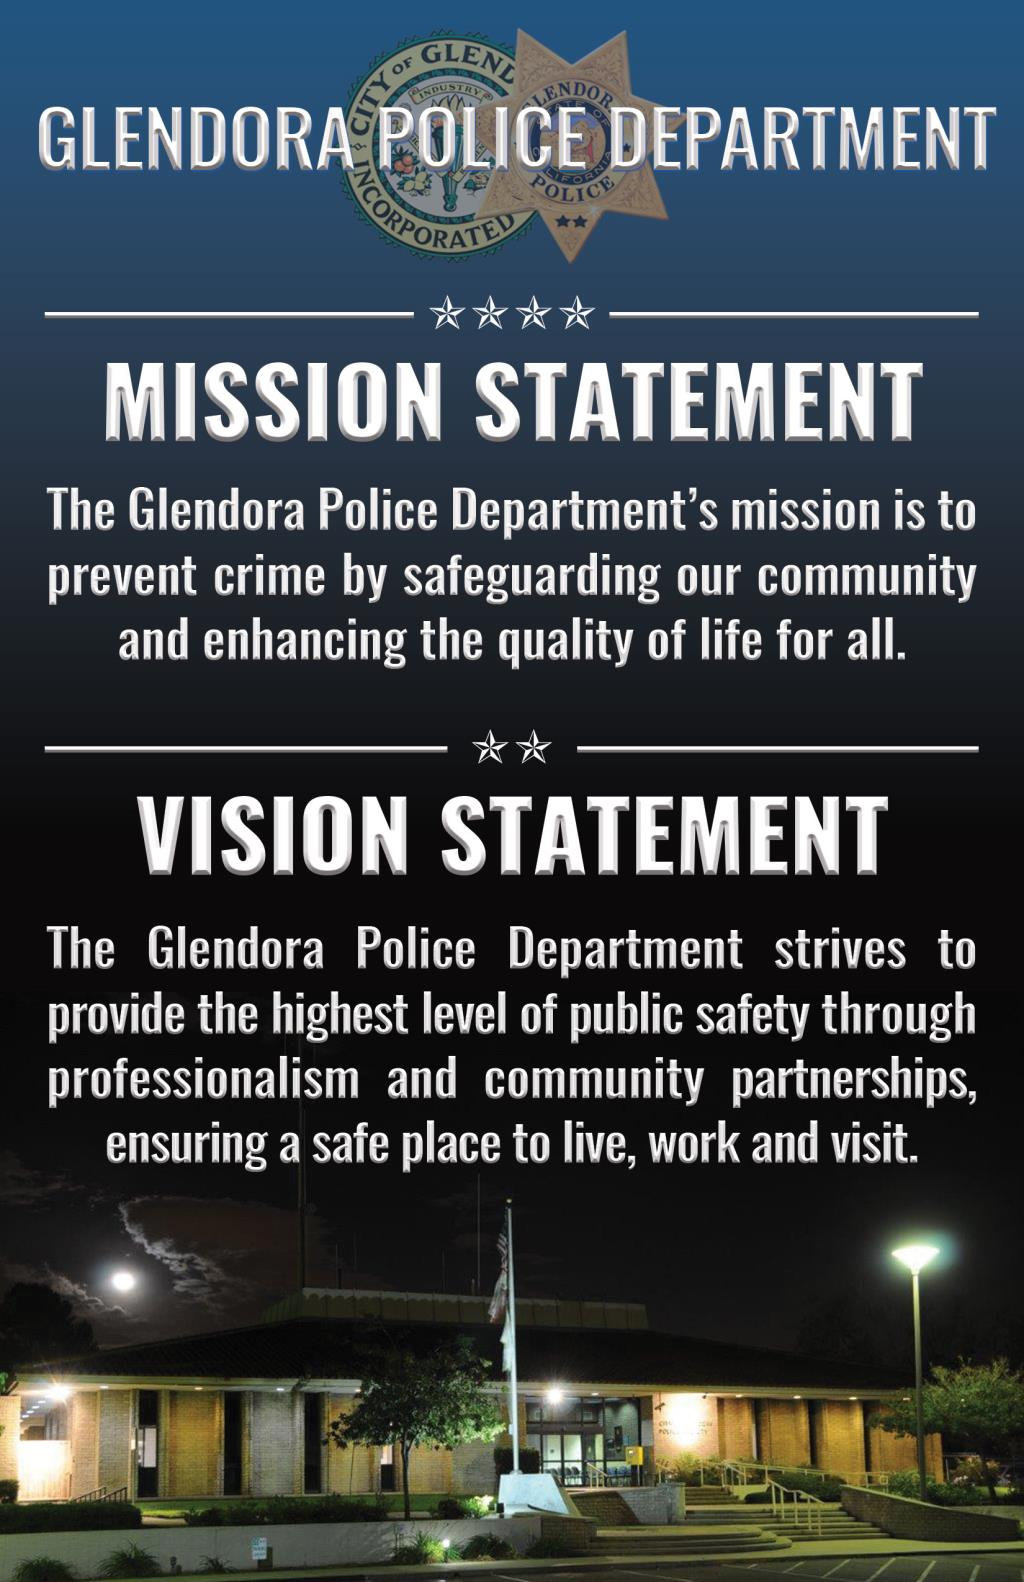 Glendora Police Department Mission. Providing outstanding personal service, safety, professionalism and respect, while maintaining the highest level of integrity in partnership with the community. Core Values.  Proactive Respectful Integrity Dedication Excellence